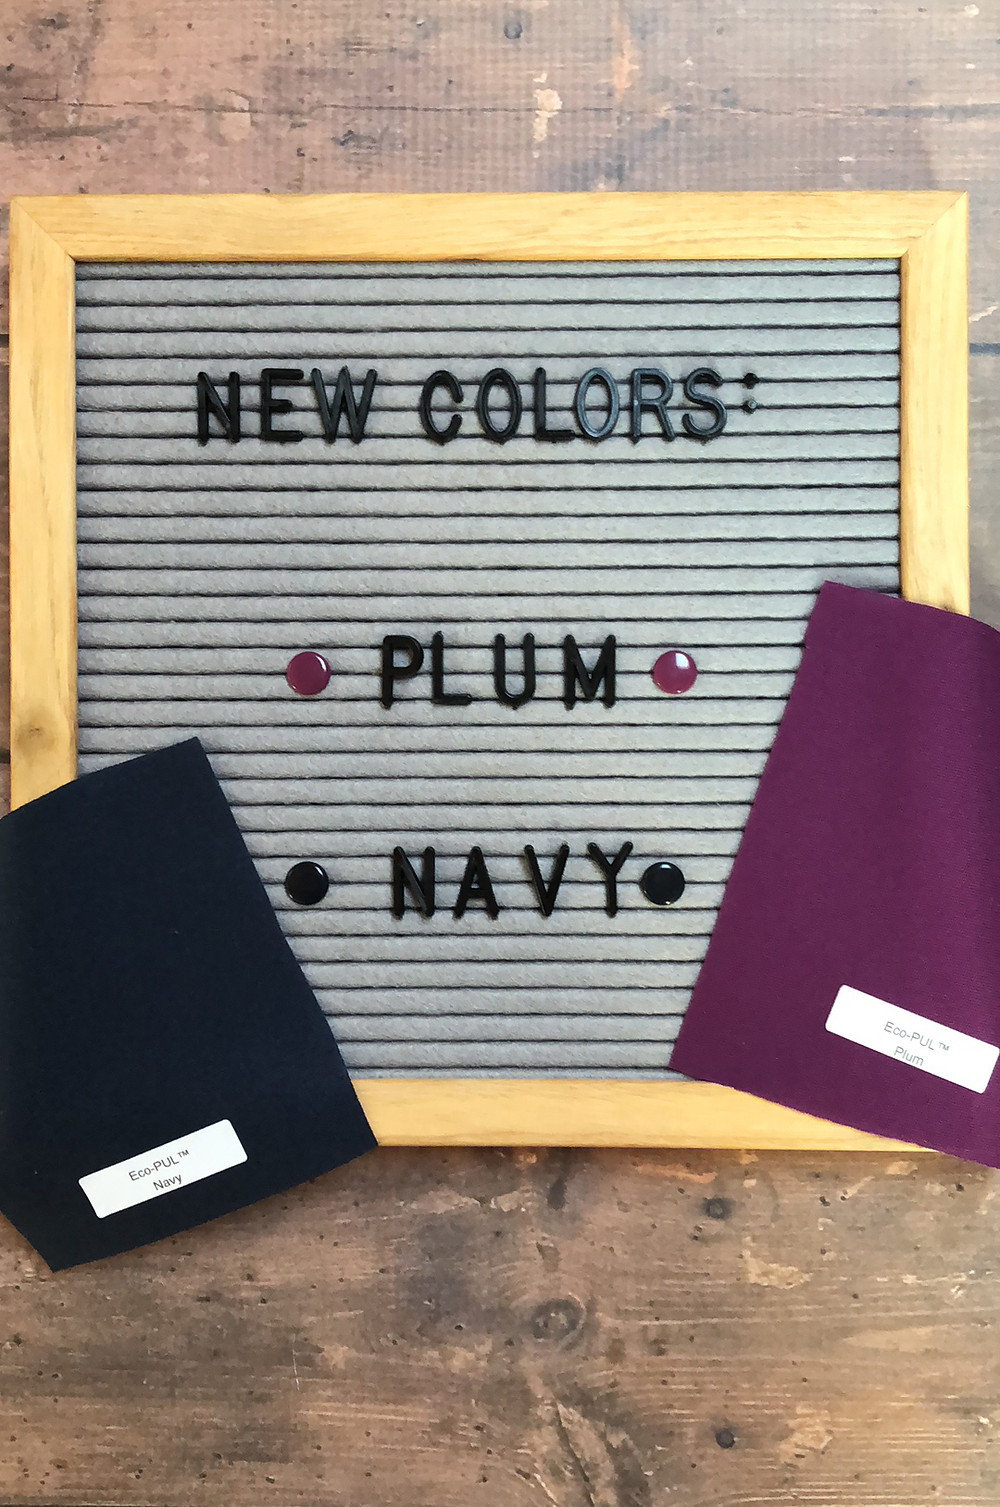 Snap-EZ diapers now in Navy and Plum